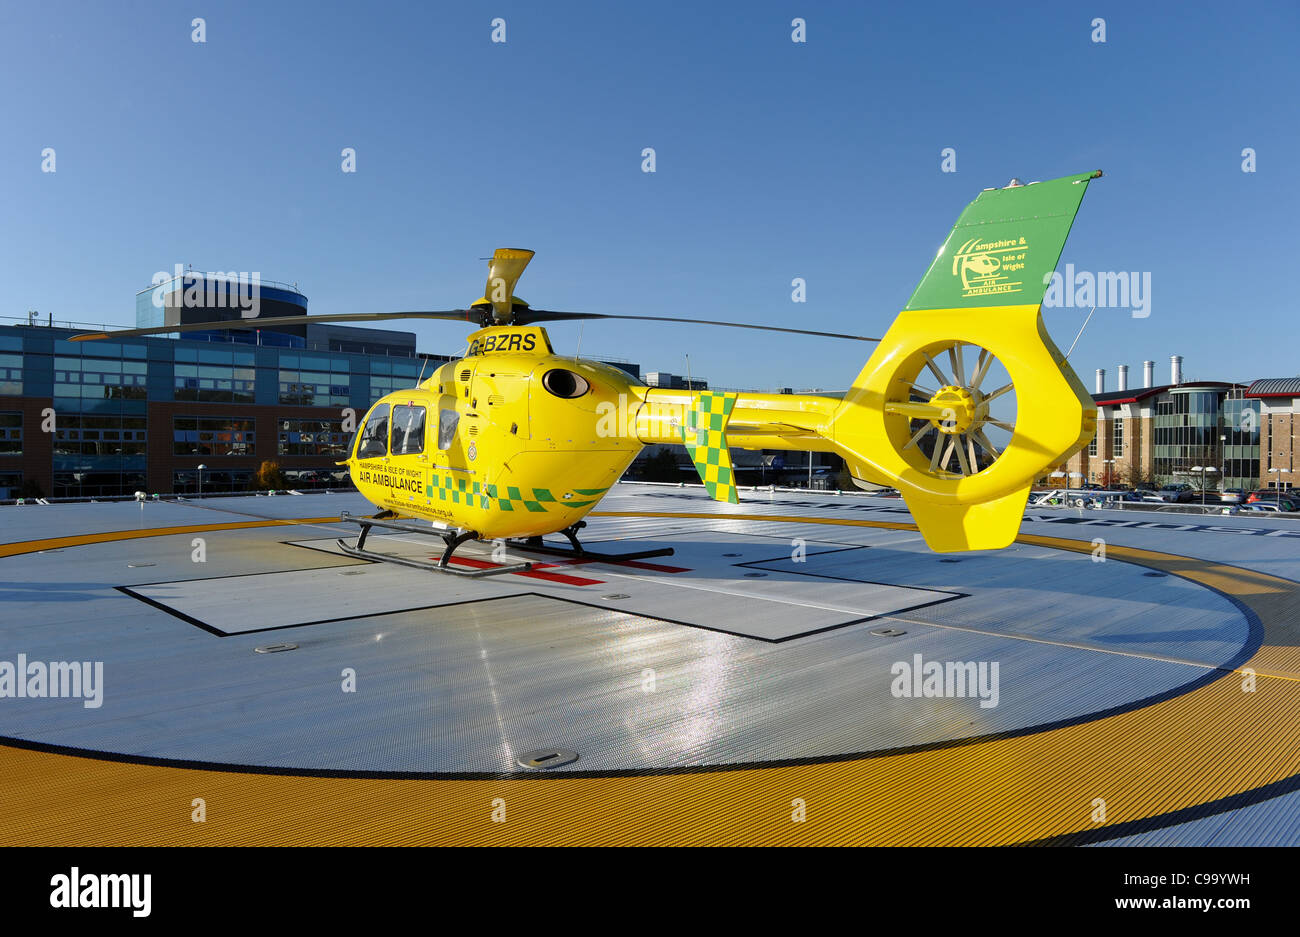 southampton general hospital helicopter landing pad - Stock Image